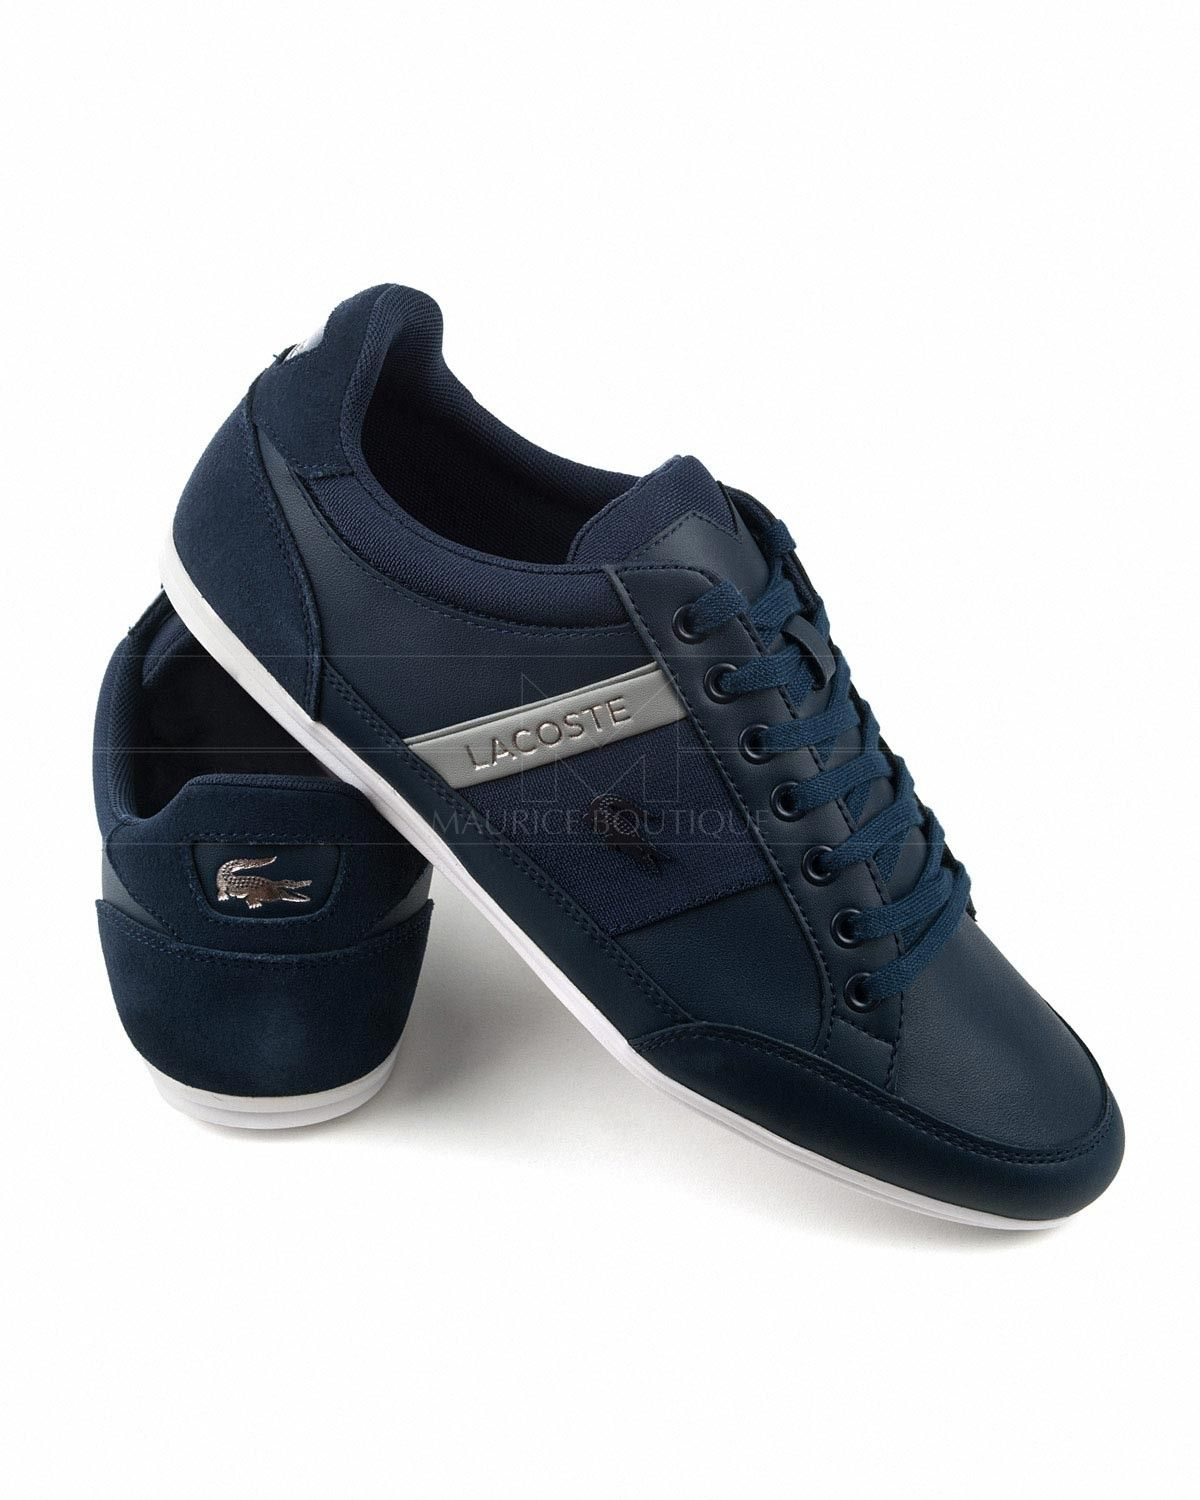 b8def4bf0f Lacoste Trainers Chaymon - Navy Blue in 2019